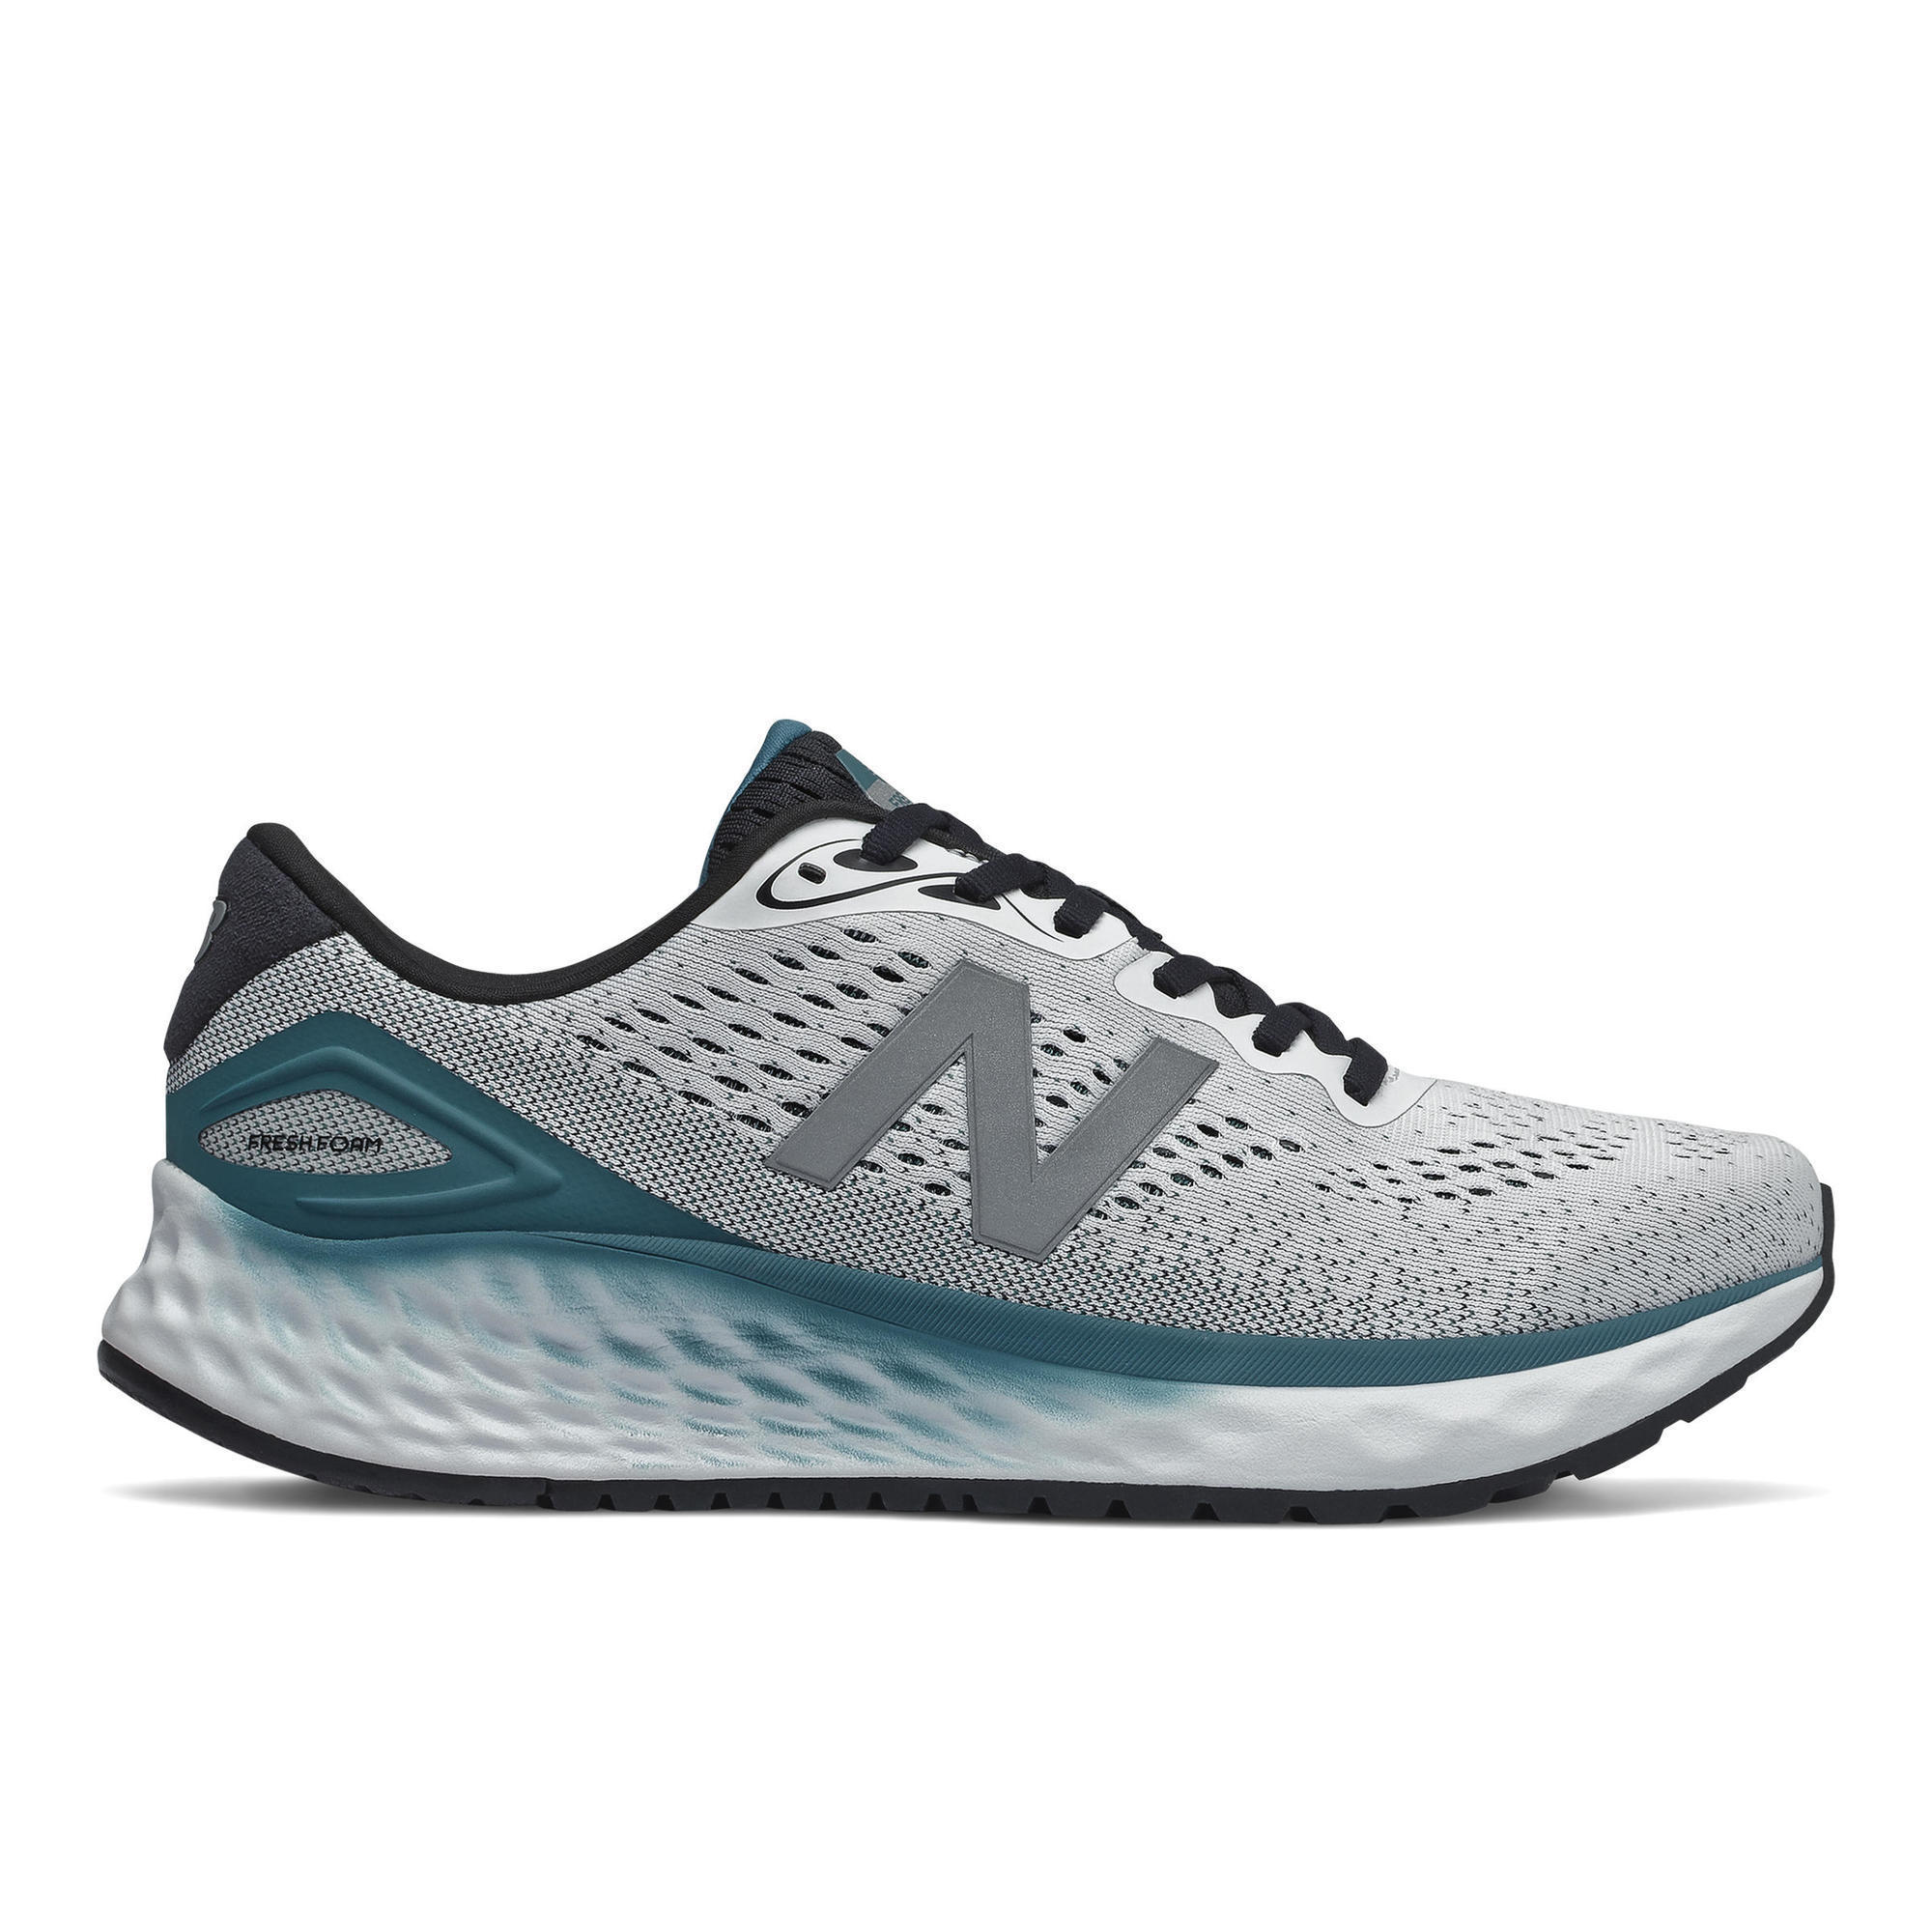 New balance - Decathlon